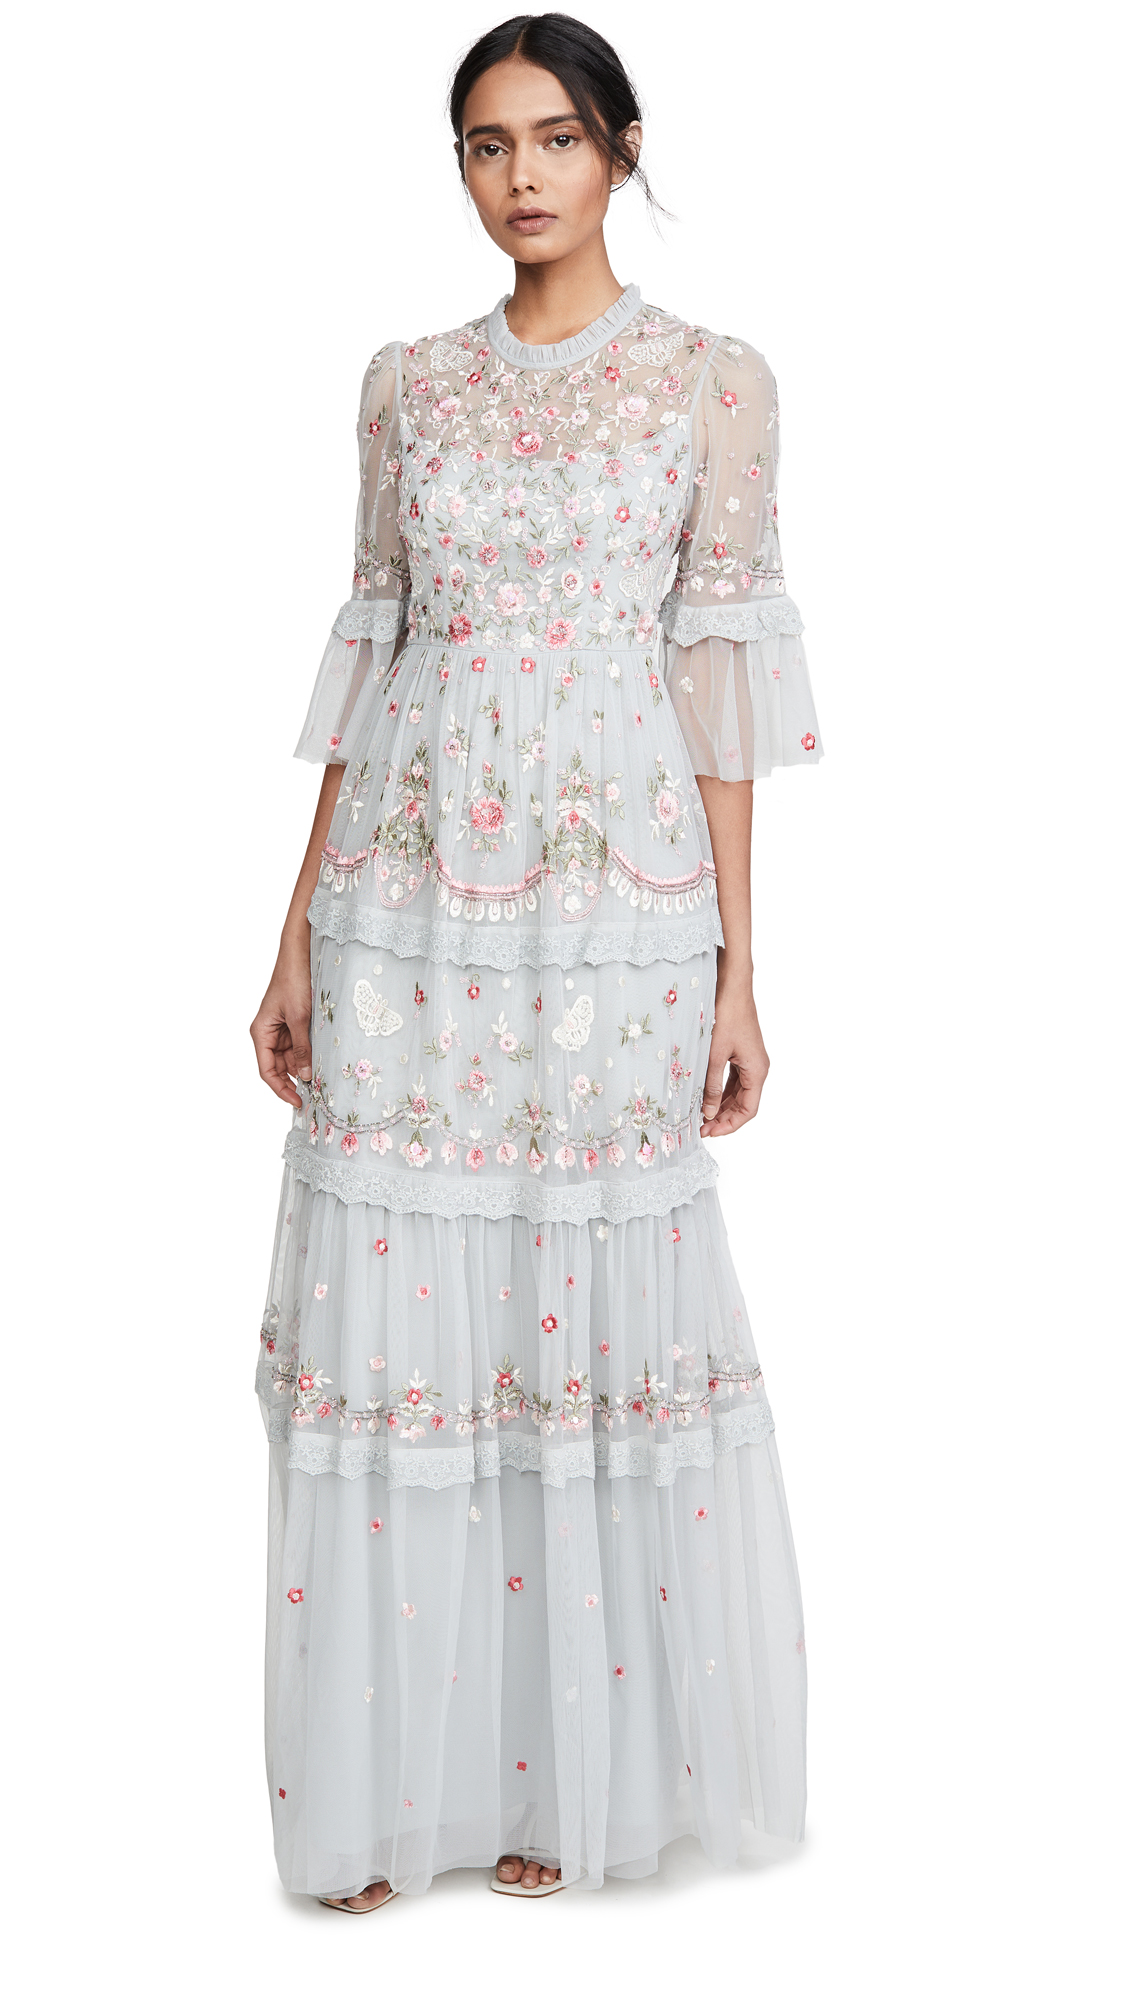 Needle & Thread Butterfly Meadow Gown - 40% Off Sale